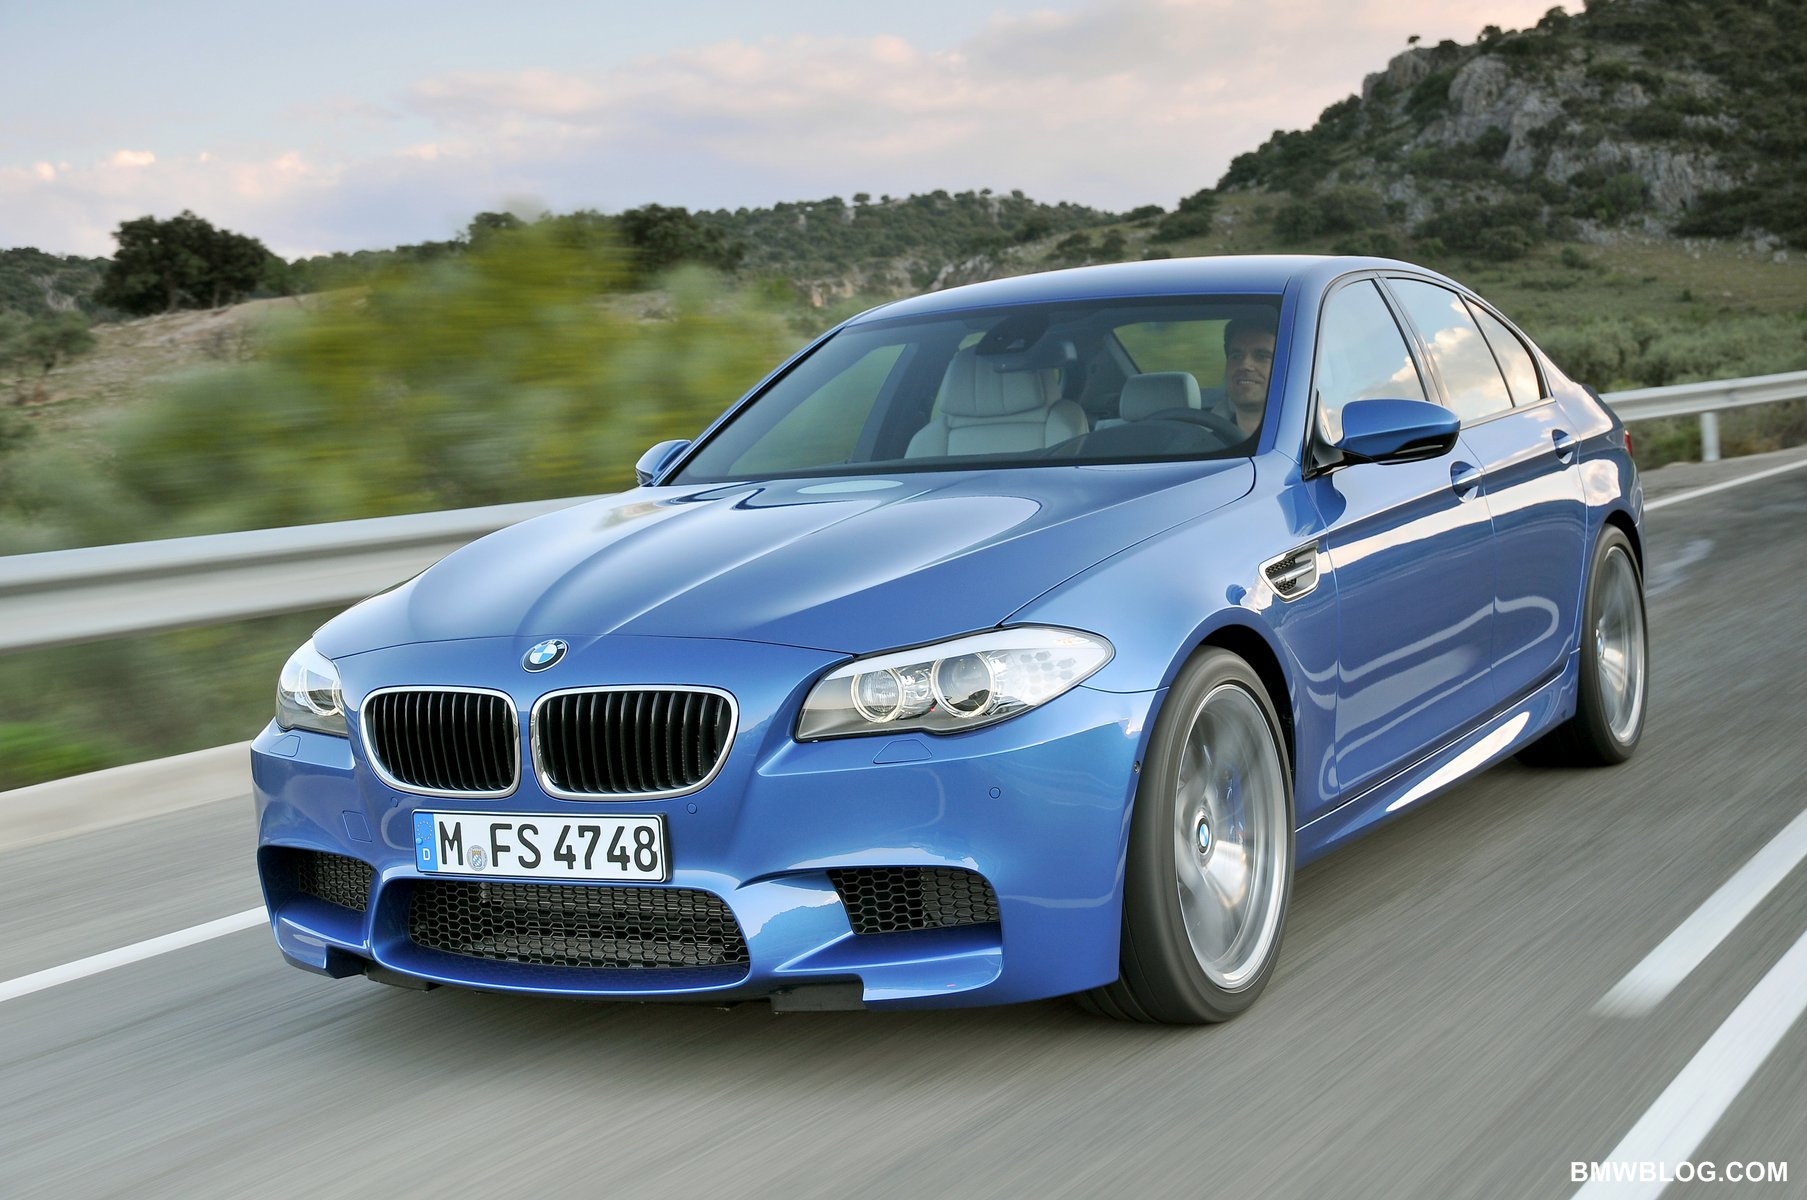 2012 bmw m5 pictures 221